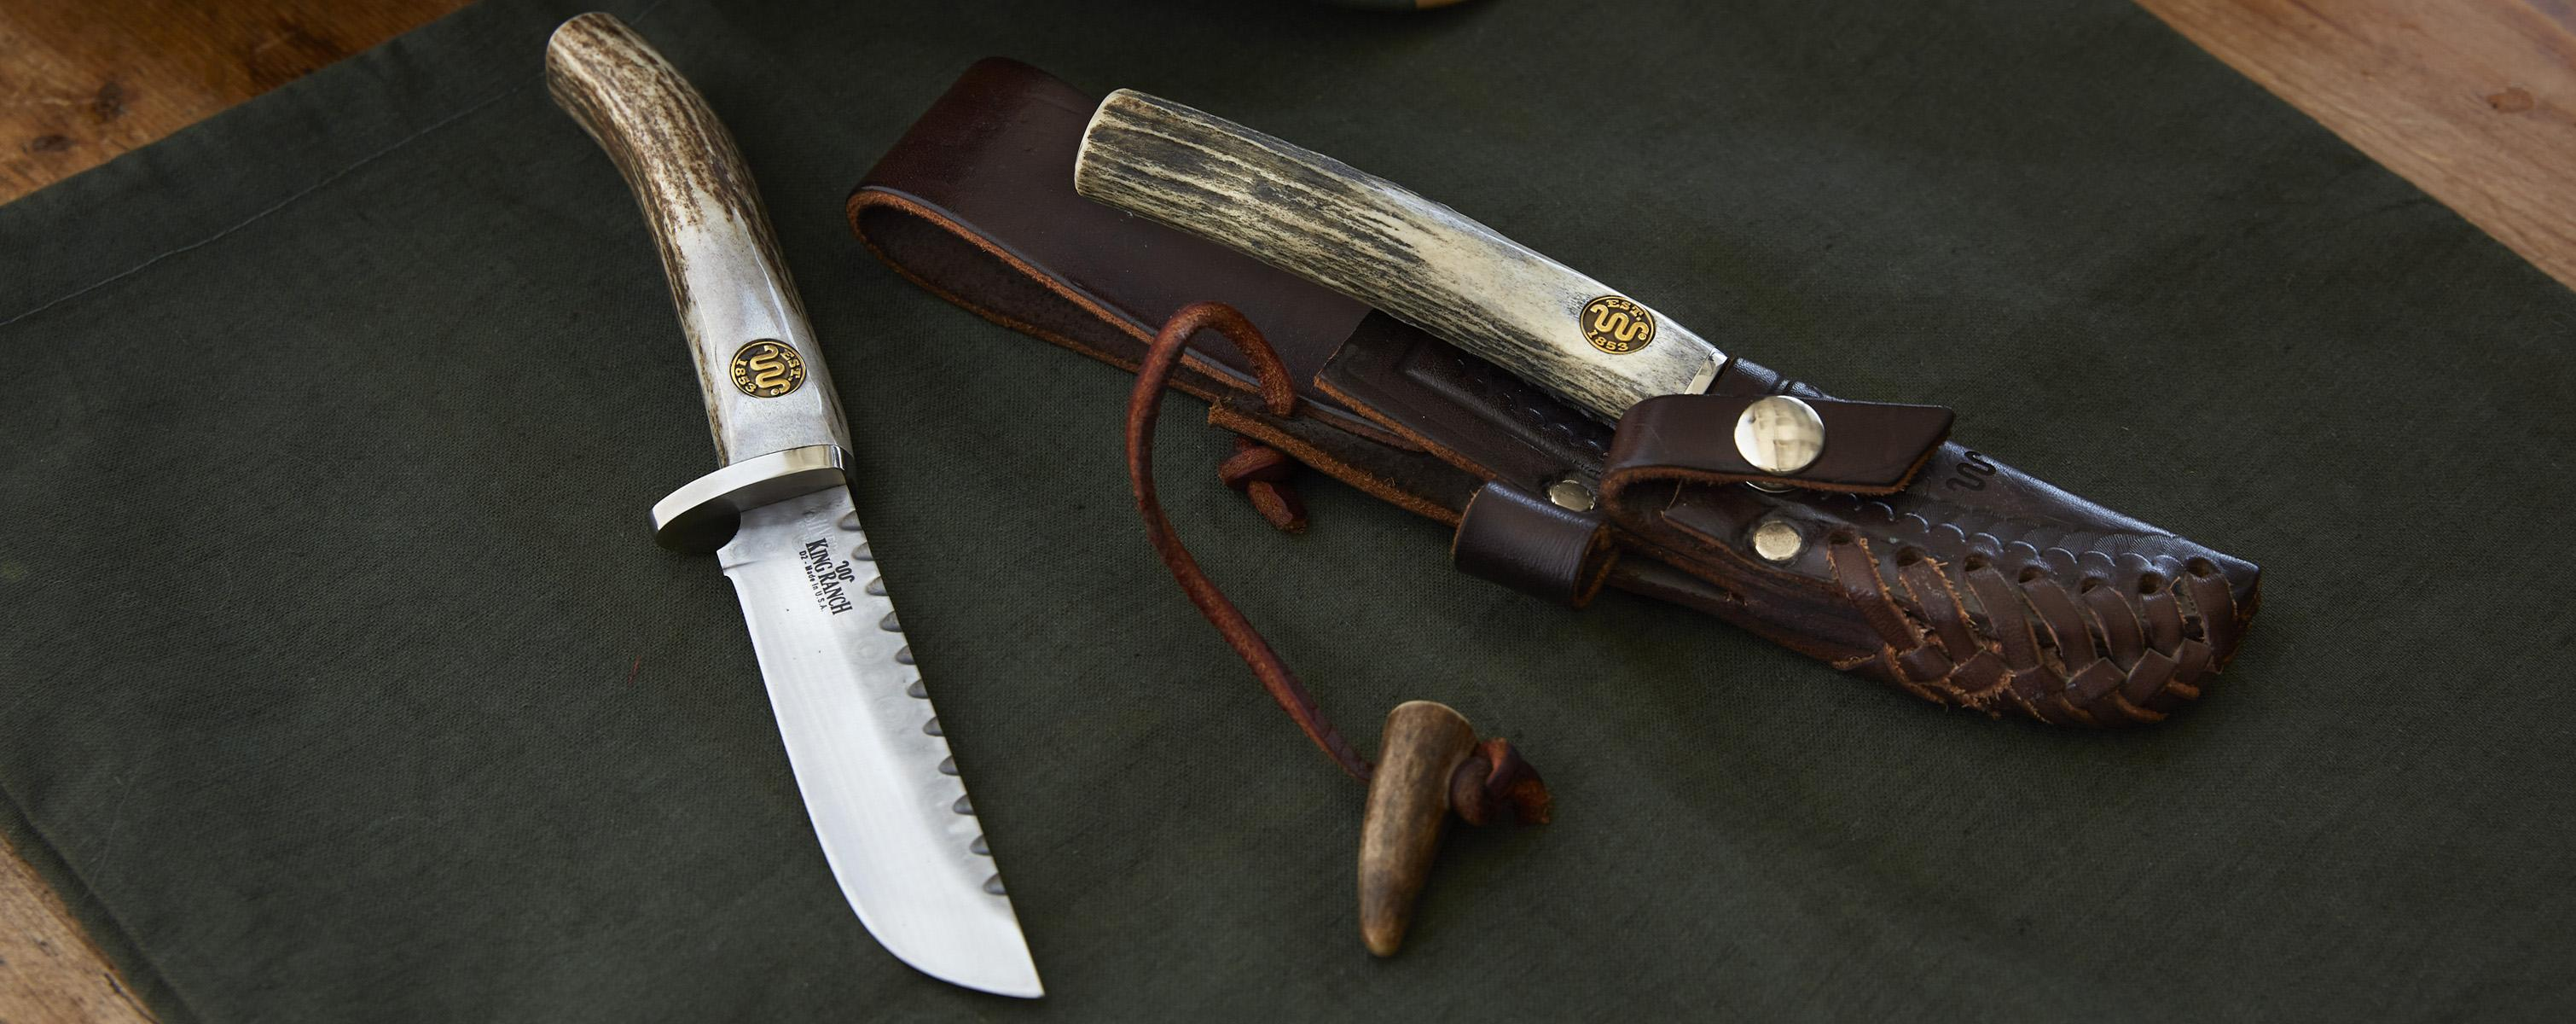 New silver stag knives